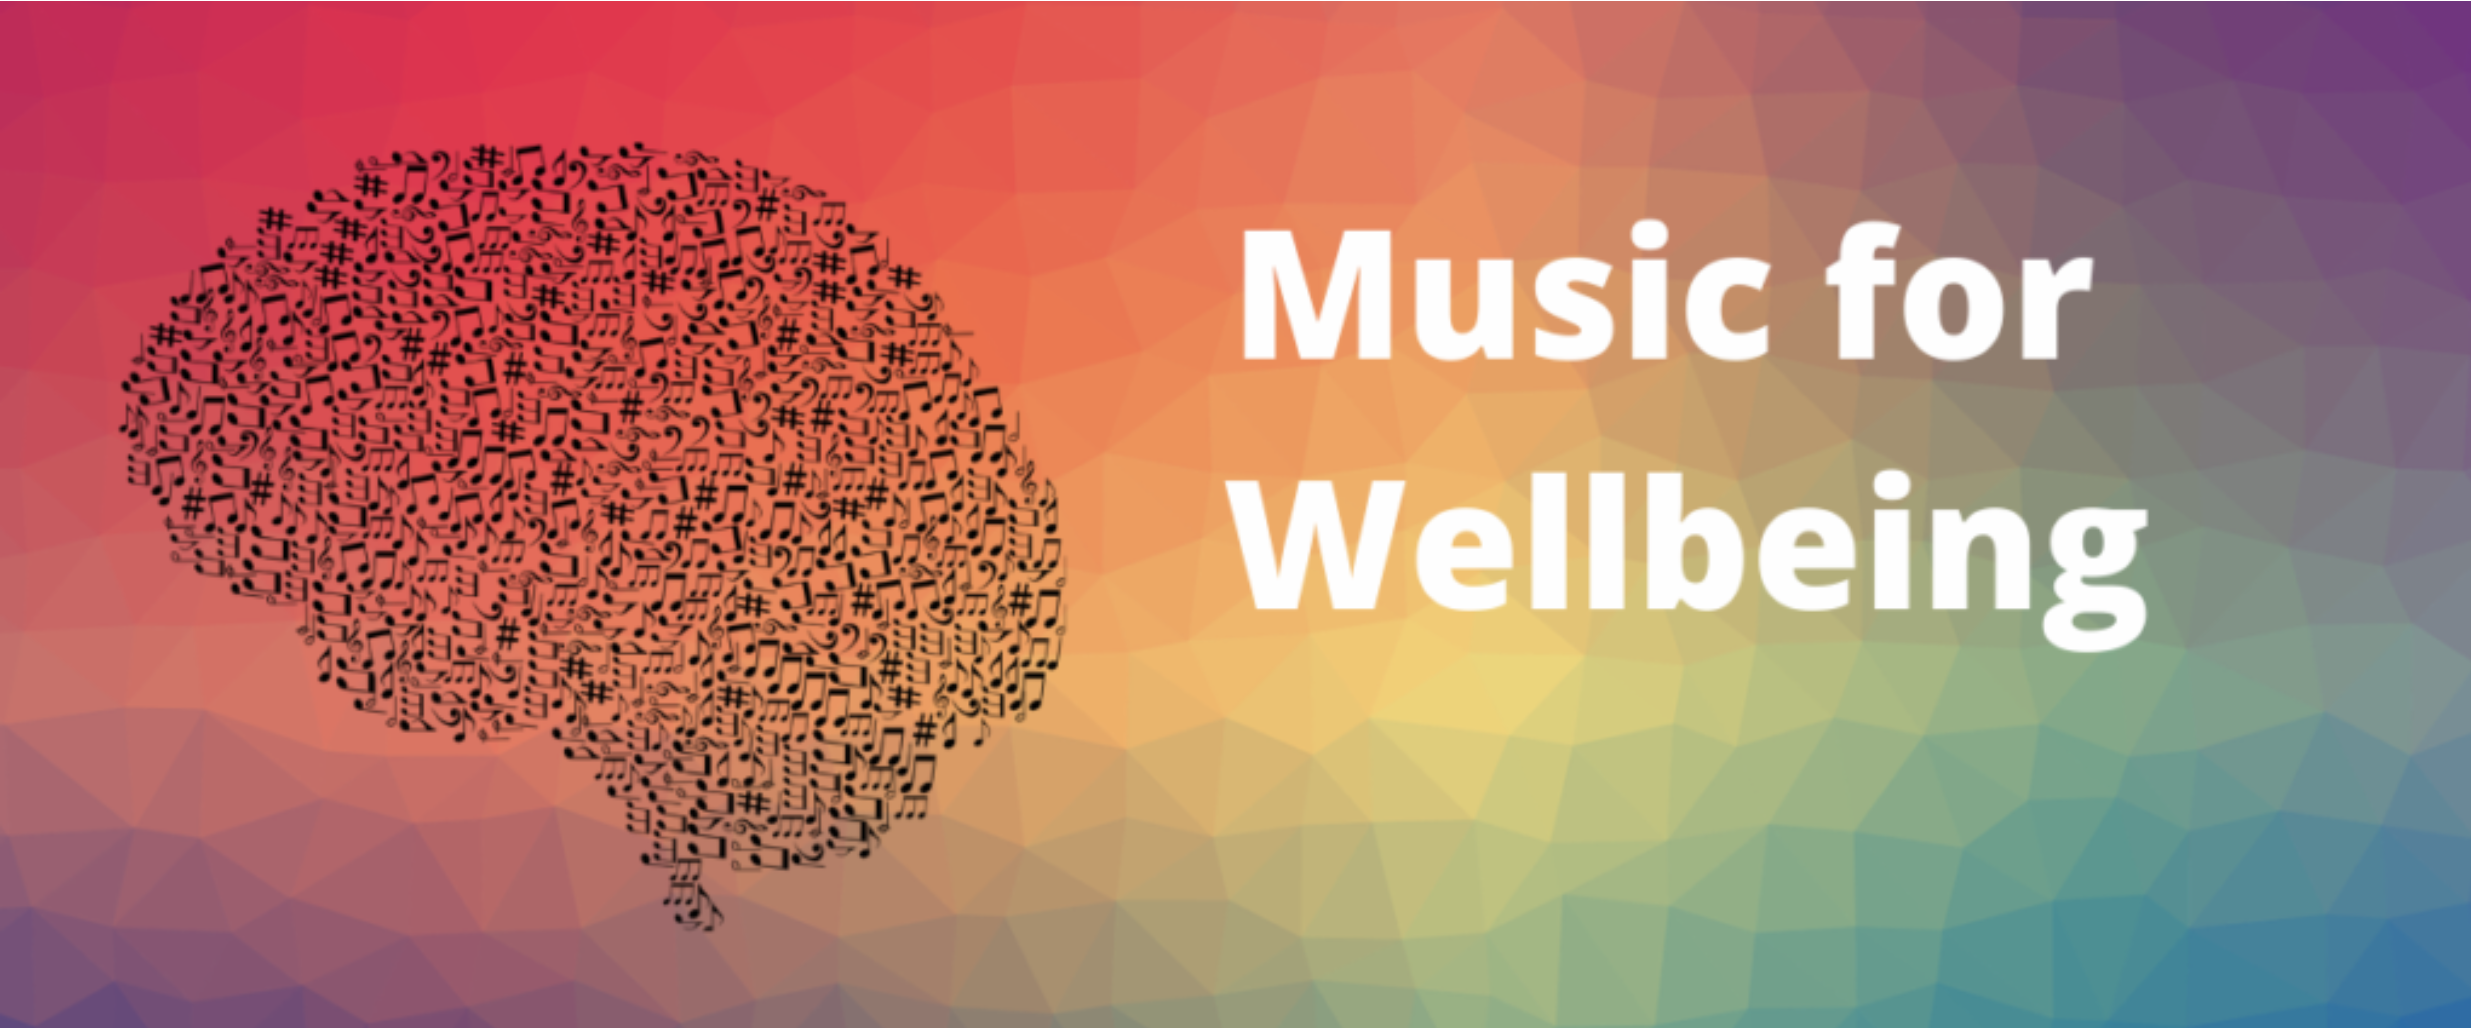 Recovery College Online – Music for Wellbeing